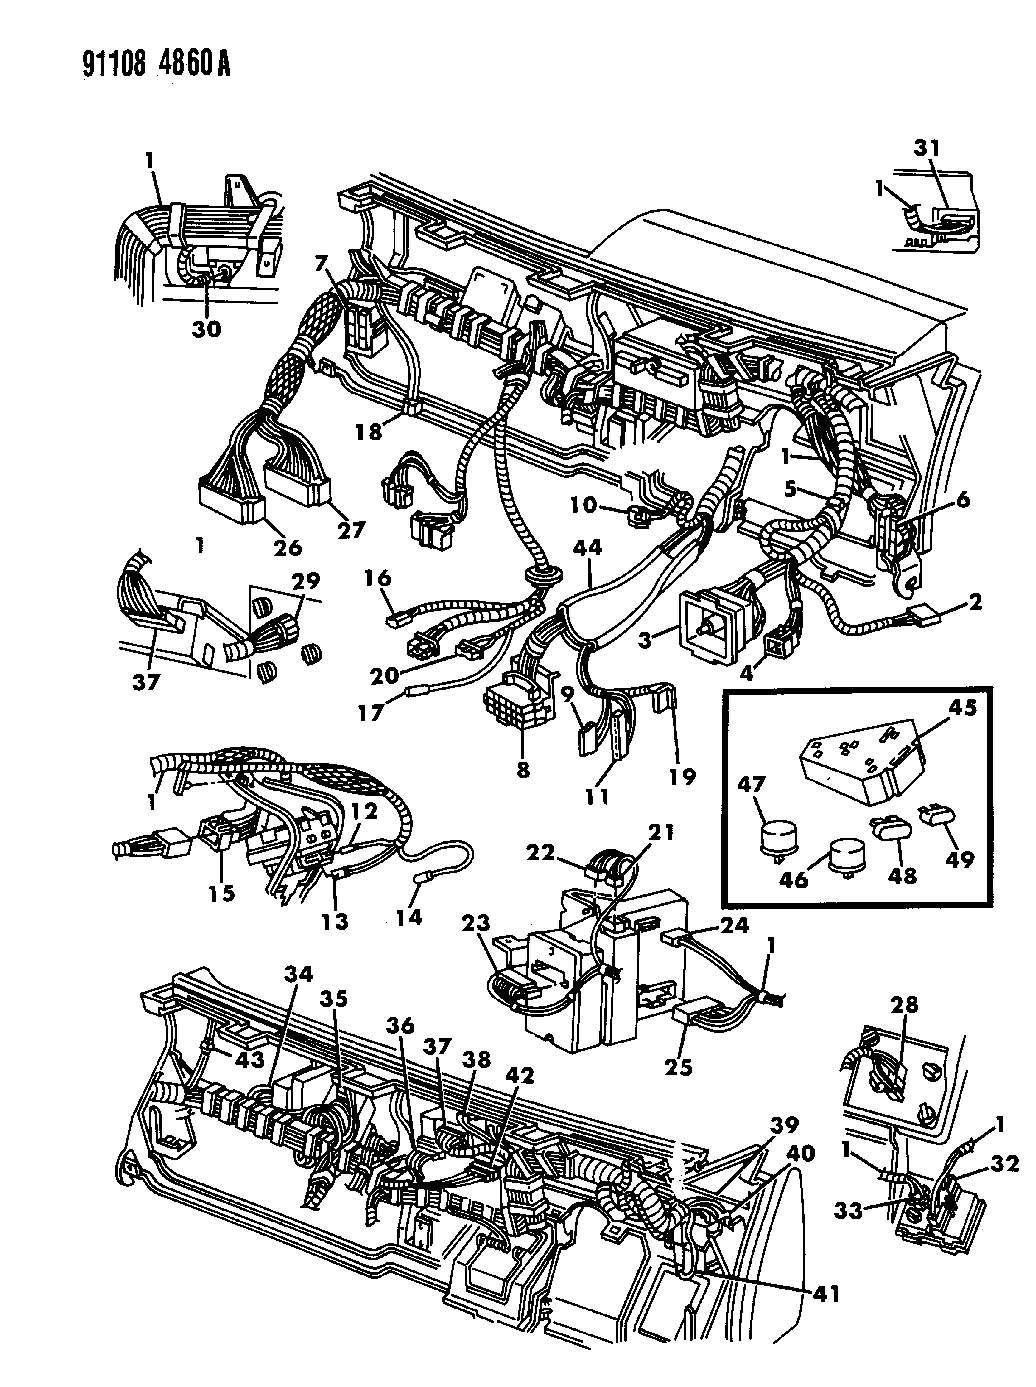 1991 dodge dynasty wiring diagram jeep wrangler wiring